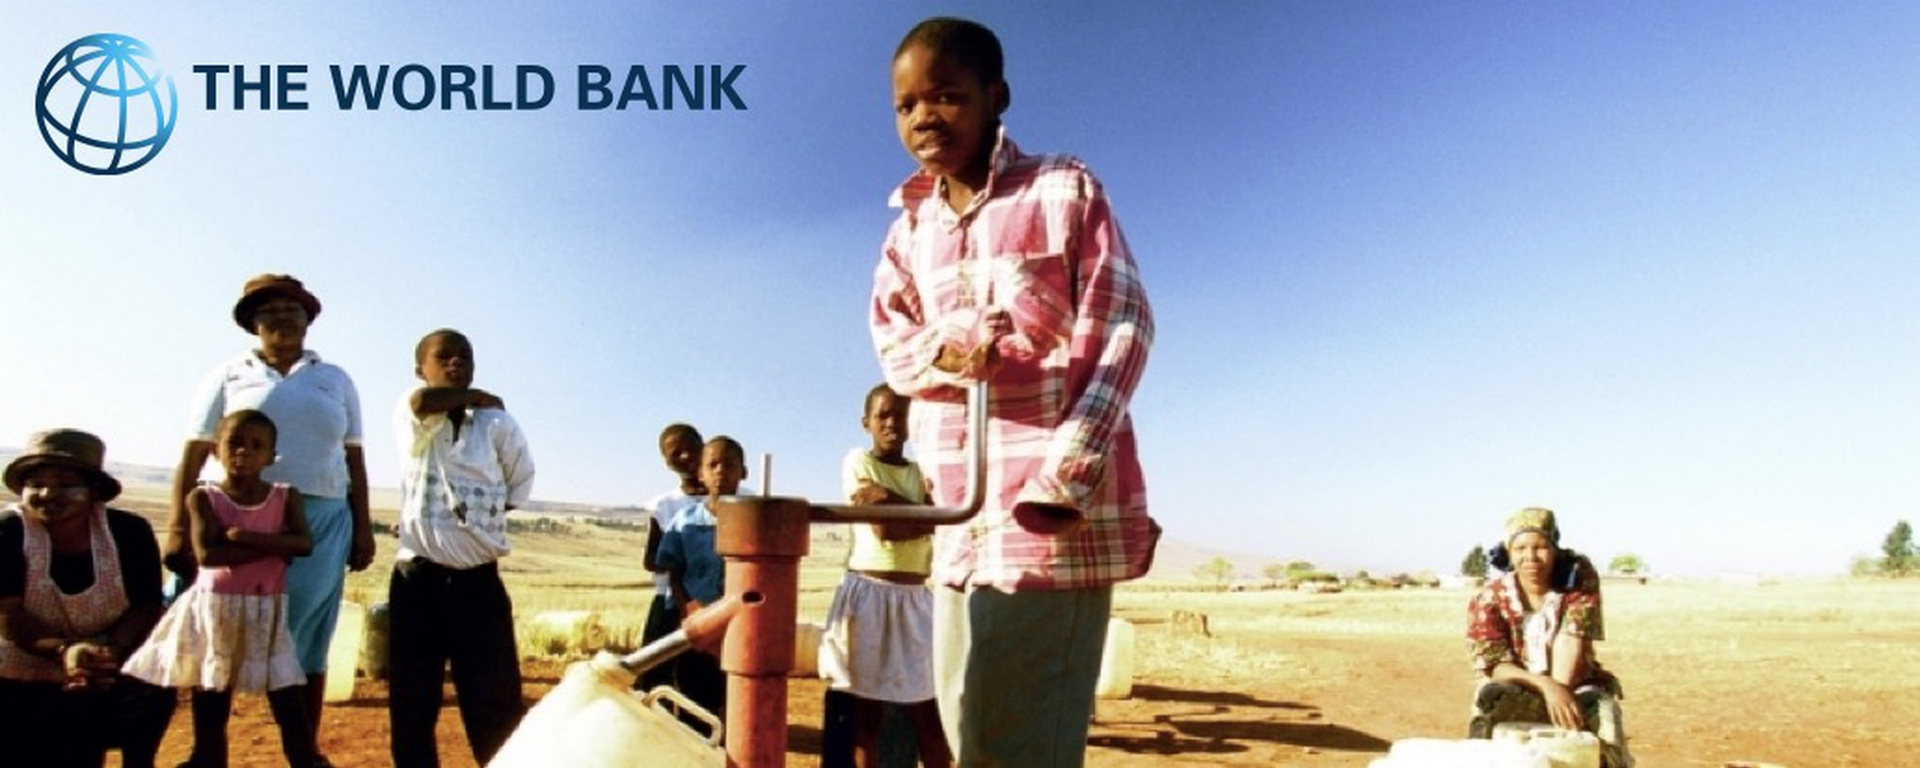 The World Bank - Finance Role Movemeback African opportunity cover image